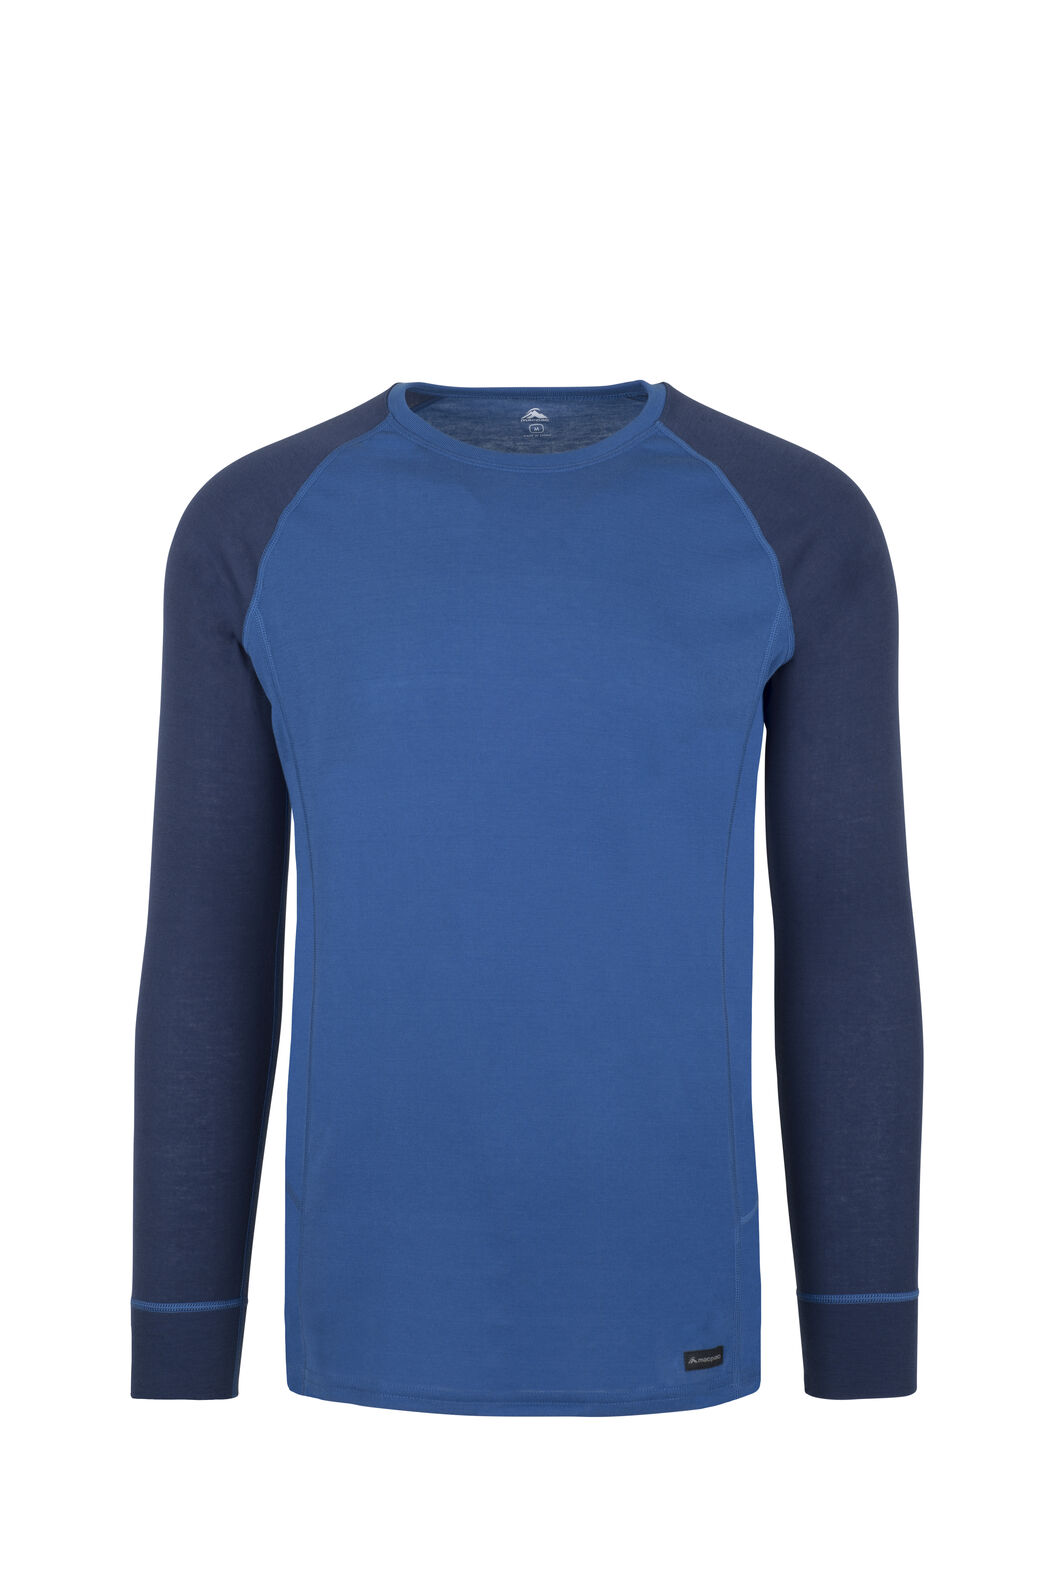 Macpac Geothermal Long Sleeve Top - Men's, True Blue/Medieval, hi-res